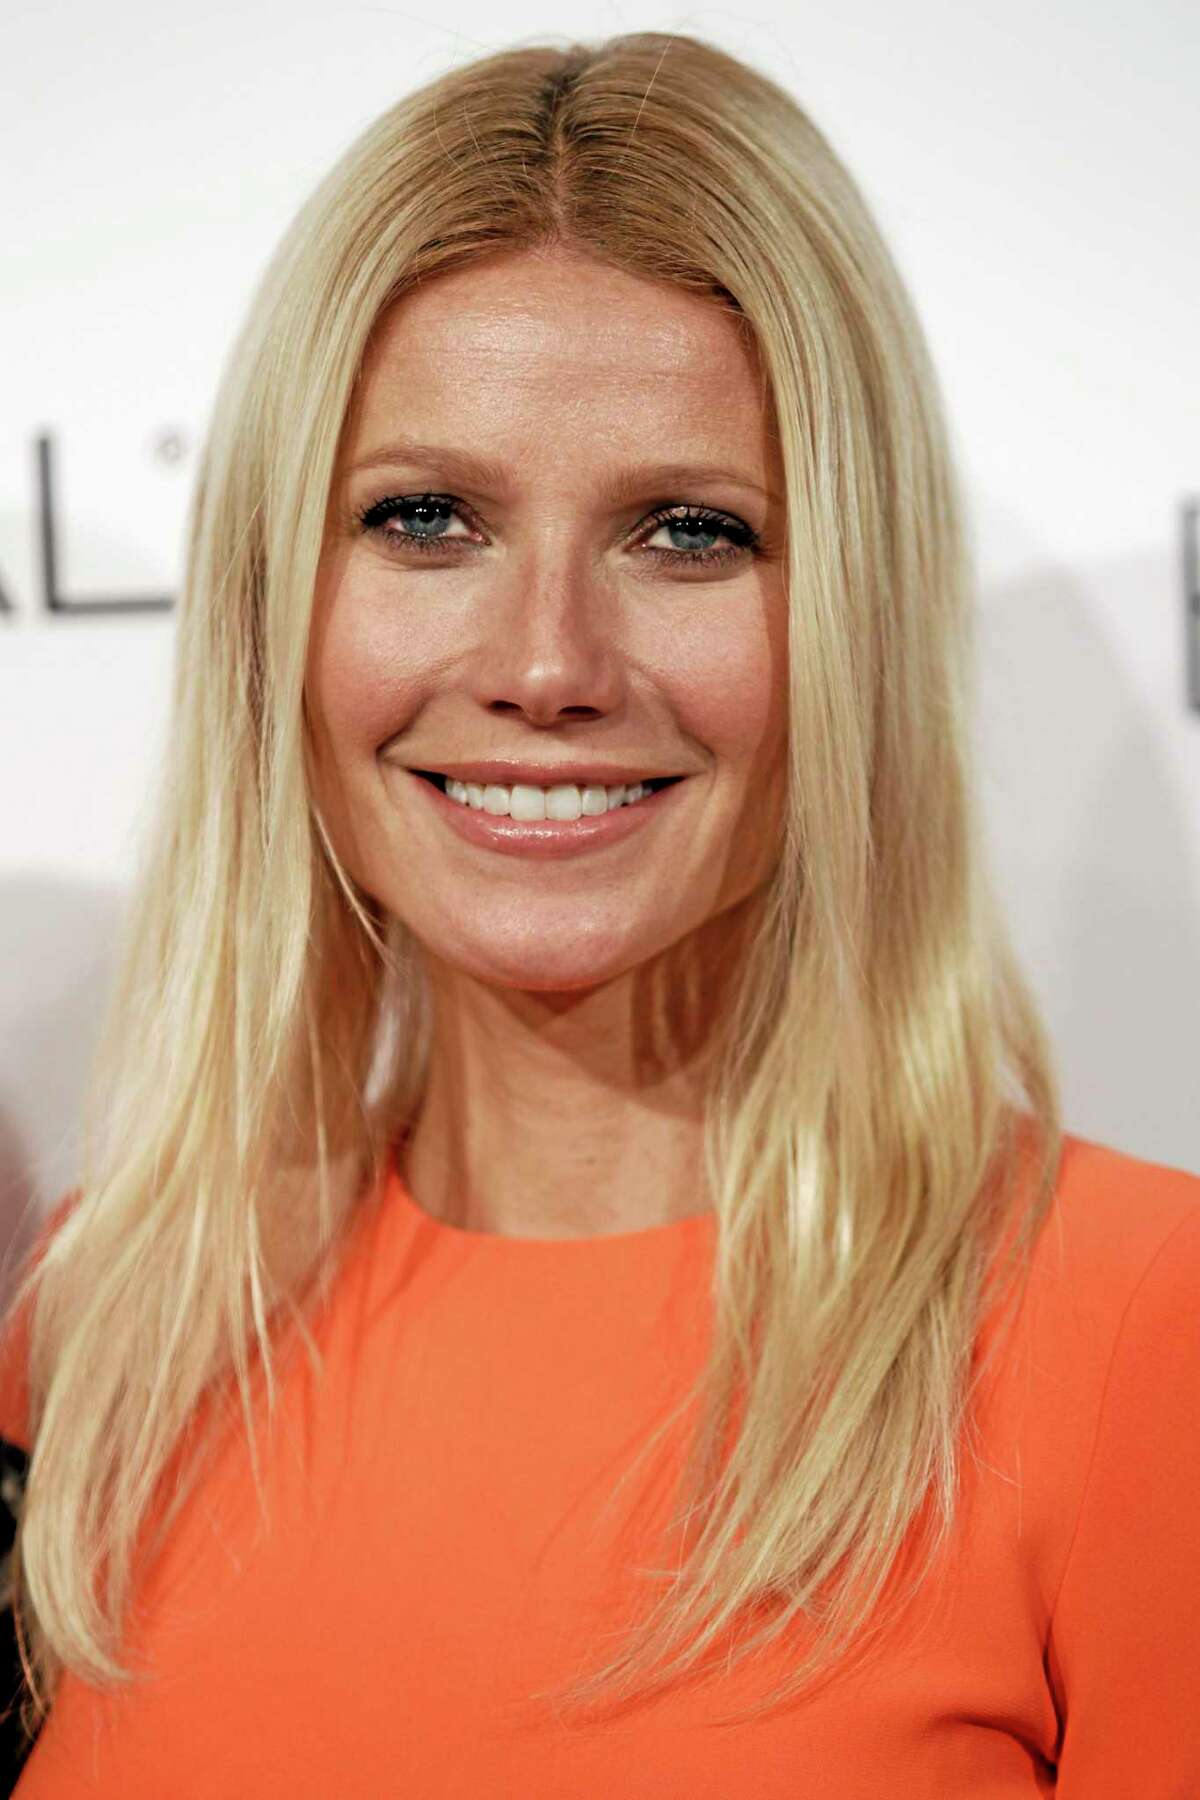 FILE - In this Oct. 18, 2010, file photo, actress Gwyneth Paltrow arrives at a ELLE magazine's 17th Annual Women in Hollywood Tribute in Beverly Hills, Calif. Paltrow and Joel Gallen are returning to produce ëStand Up to Cancerí for a second time and other stars from TV, film and music will encourage and accept donations from the public. The money raised supports cross-disciplinary research toward new cancer treatments. (AP Photo/Matt Sayles, File)